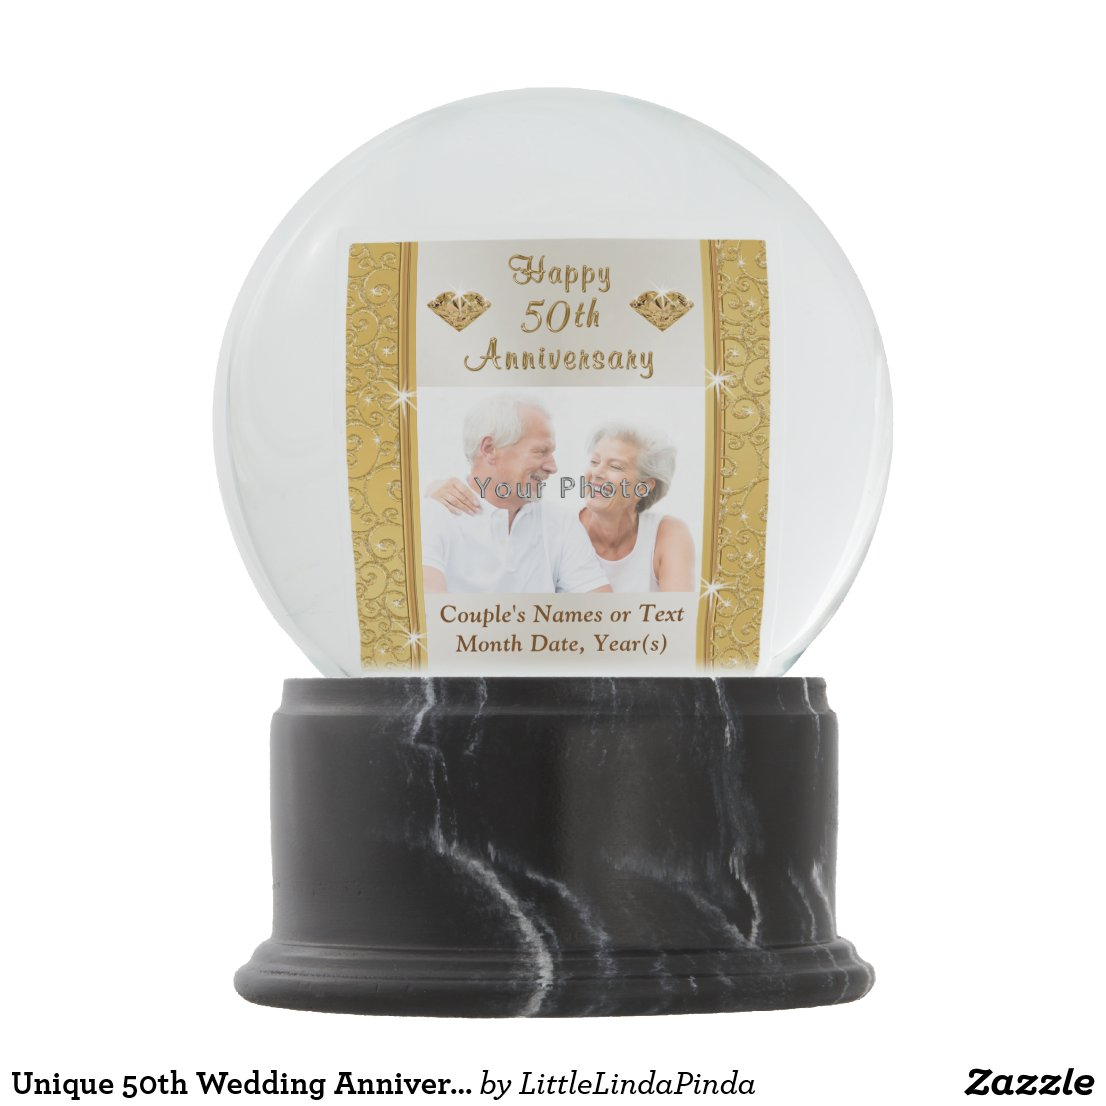 Unique 50th Wedding Anniversary Gifts, Snow Globes